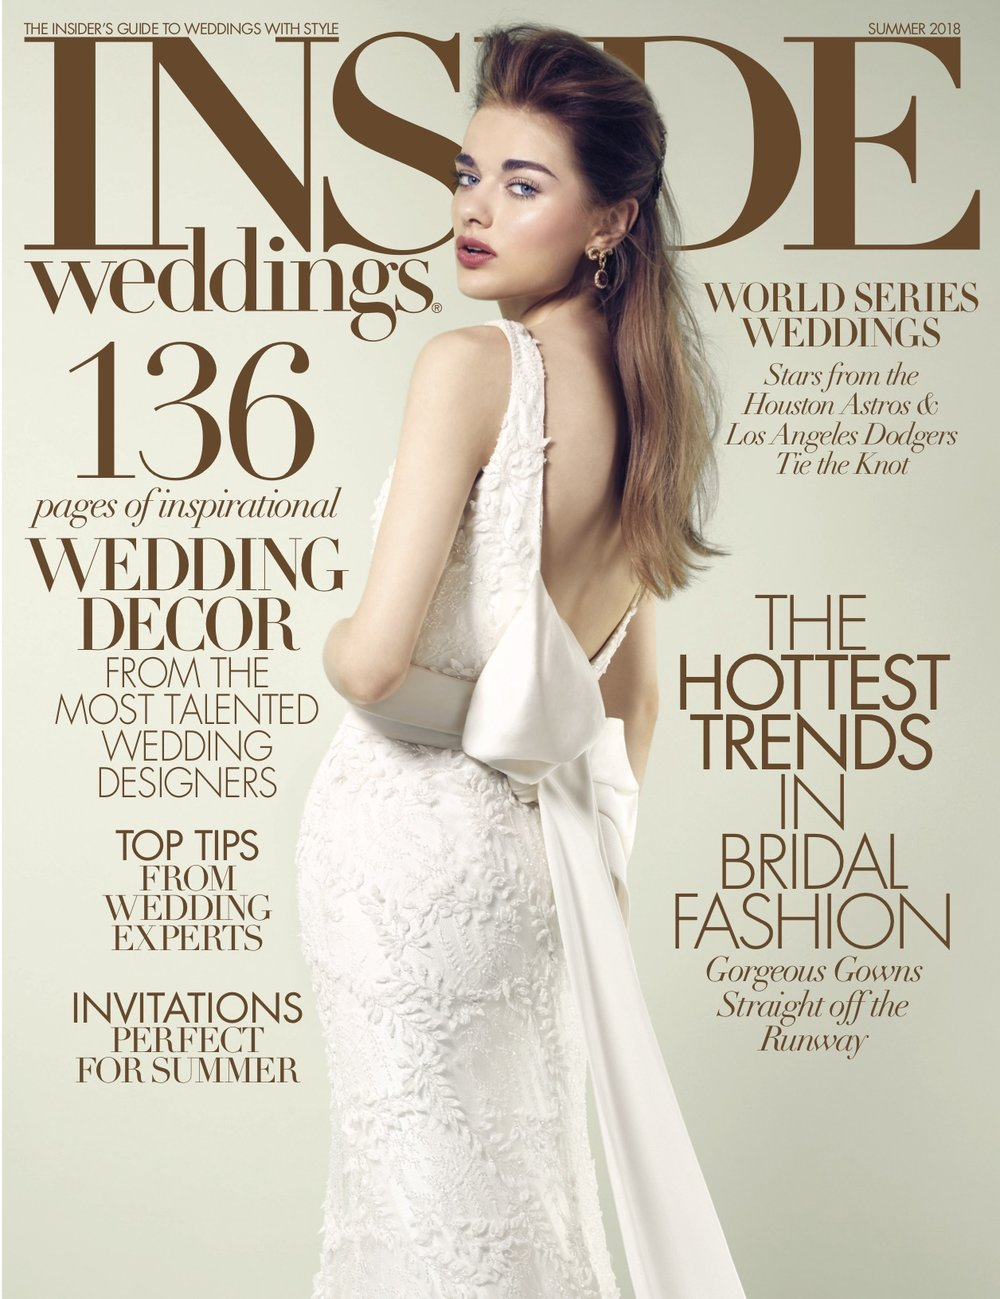 Inside-weddings-cover-magazine.jpg